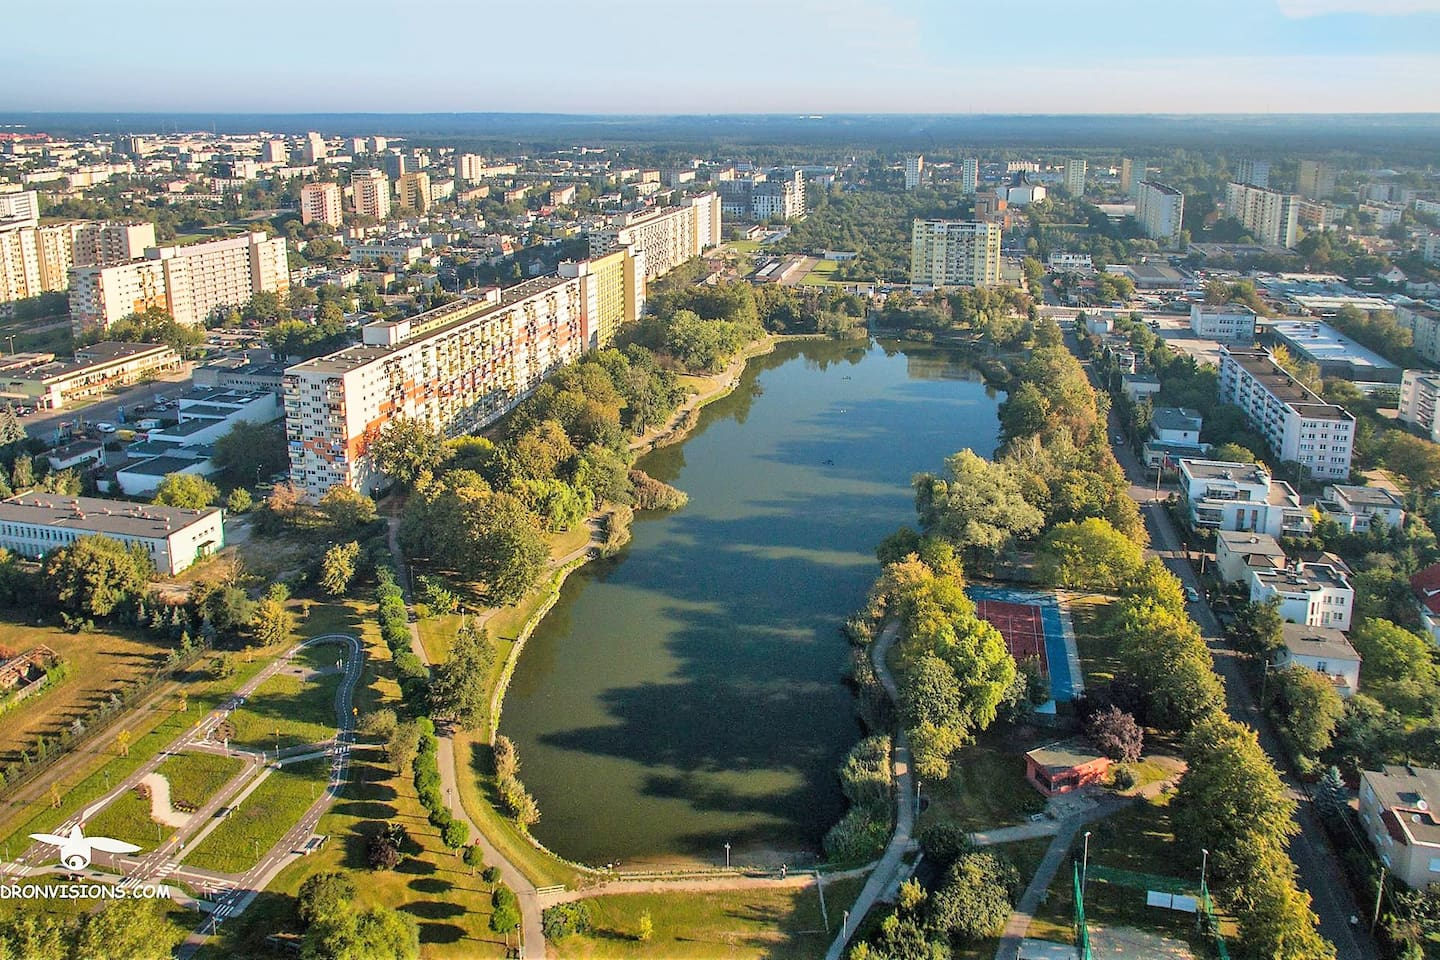 Beautiful and quite area with lots of space for peaceful walks or jogging around the lake. This apartment is located in the 4 story building to your right.